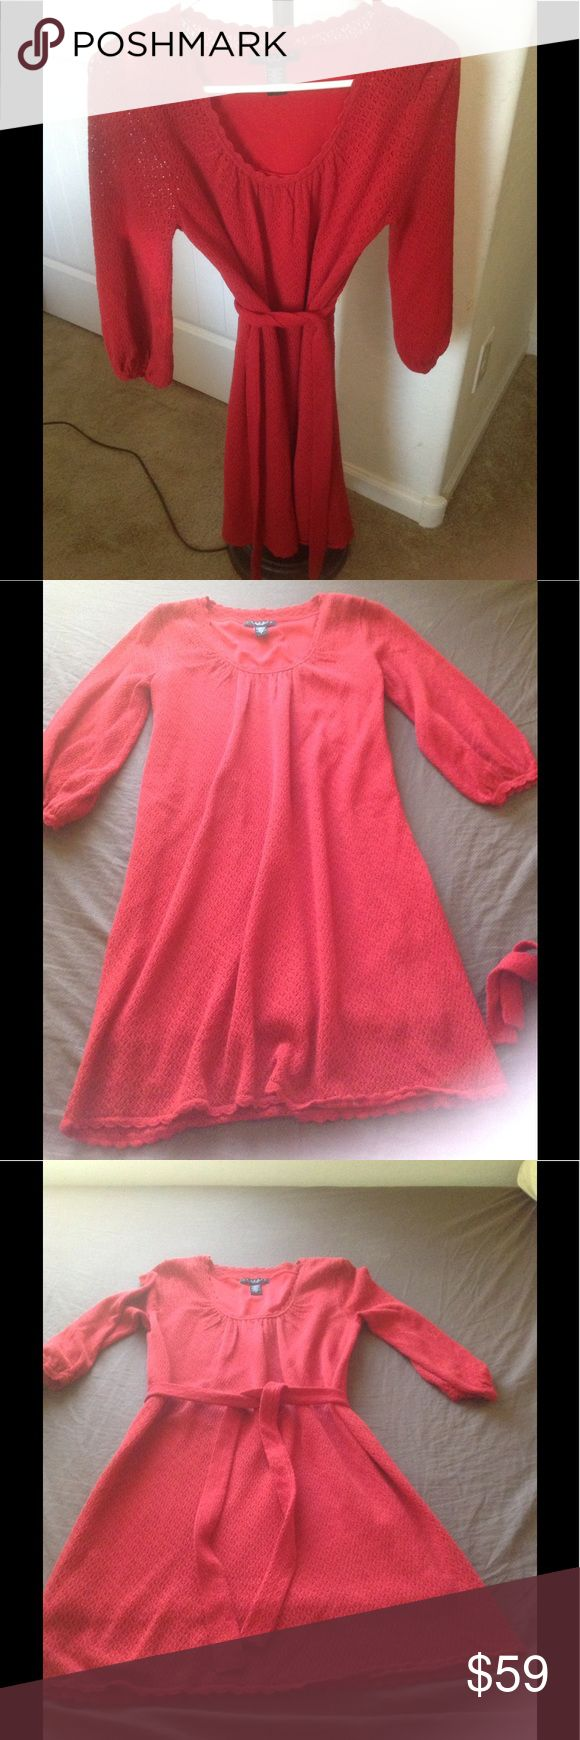 Beautiful light knit Red Laundry Dress This a beautiful Light knit red dress it is two piece. Has the liner underneath. Can be worn tied at the waist or without sash. In good preloved condition Laundry By Shelli Segal Dresses